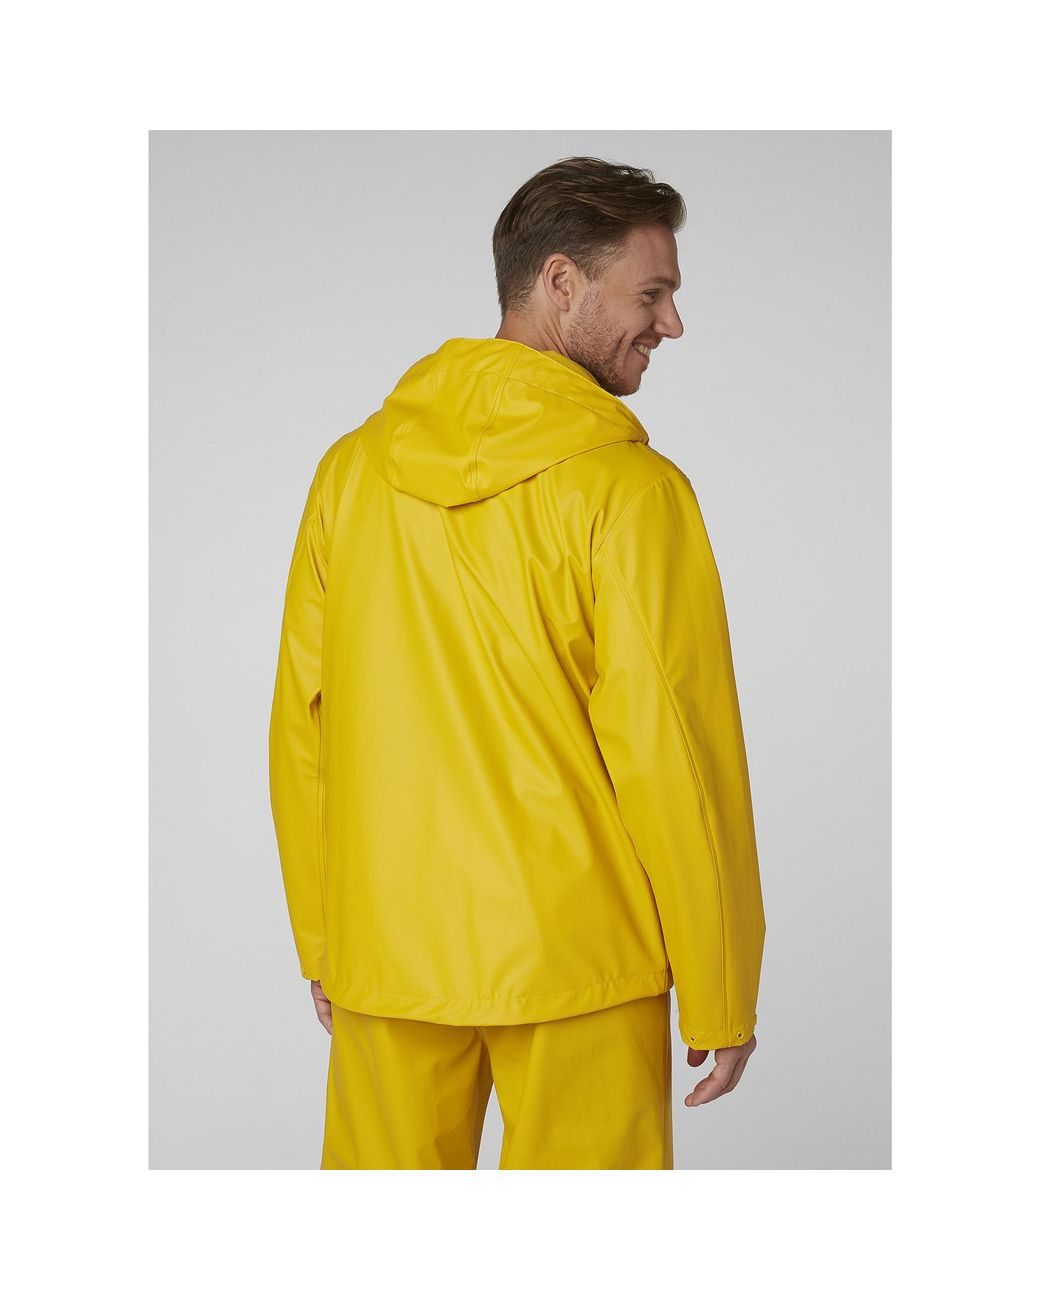 Essential Yellow Hombre Helly Hansen Moss Outdoor Chaqueta Impermeable